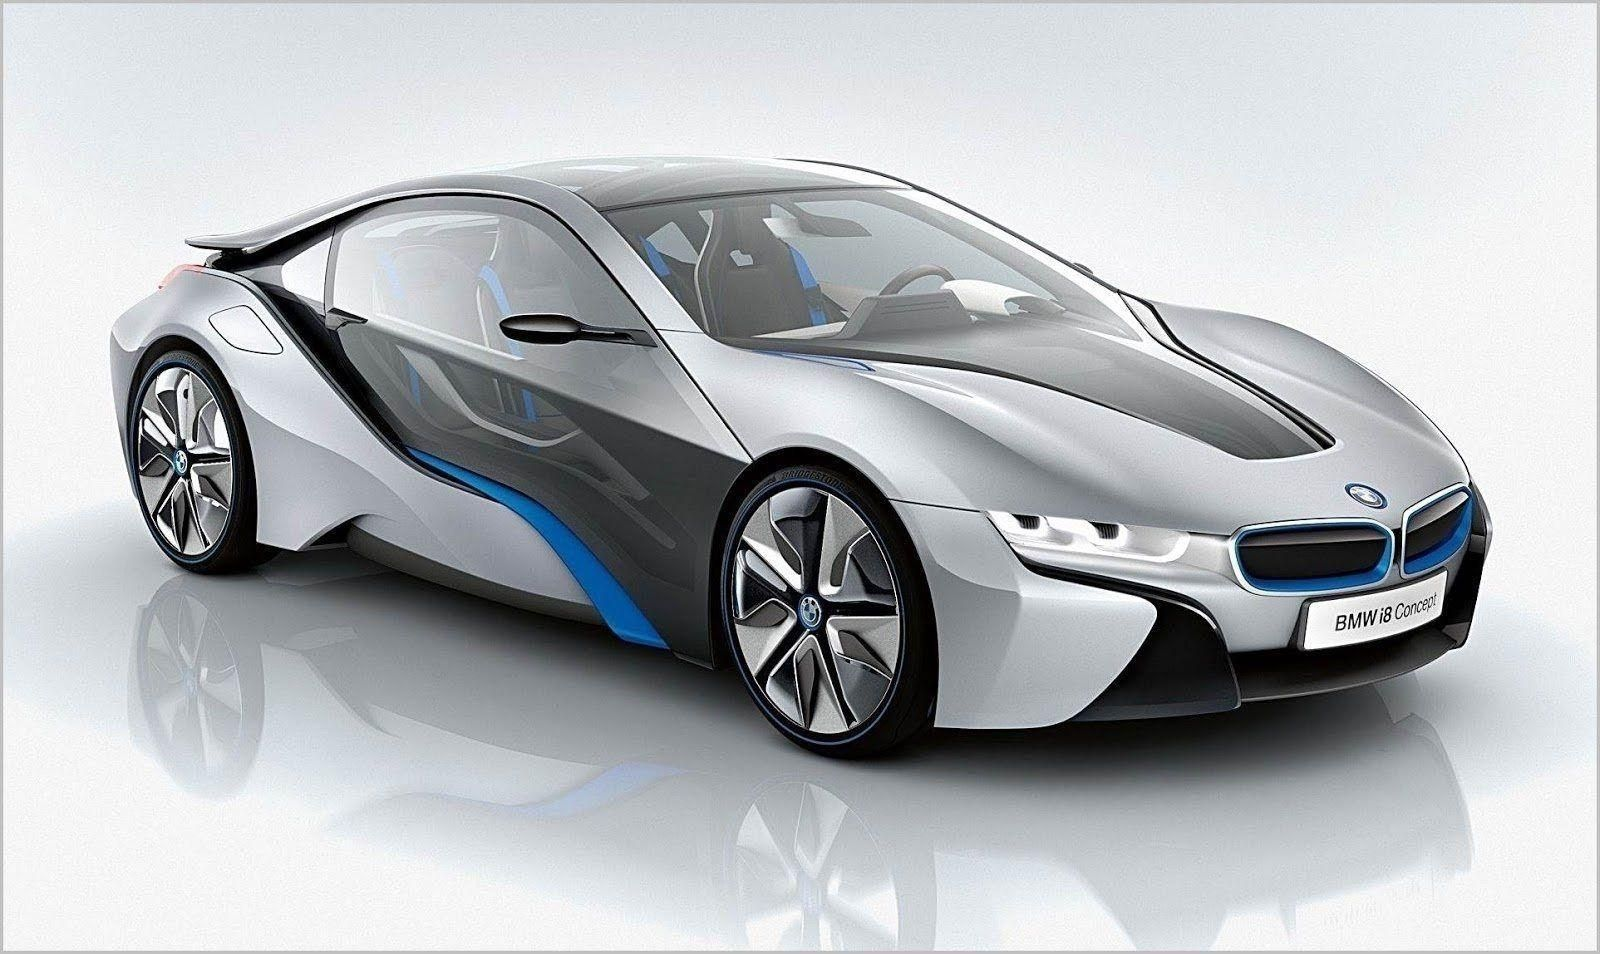 2019 Bmw I9 Price The Car Guide Intended For 2019 Bmw I9 Review